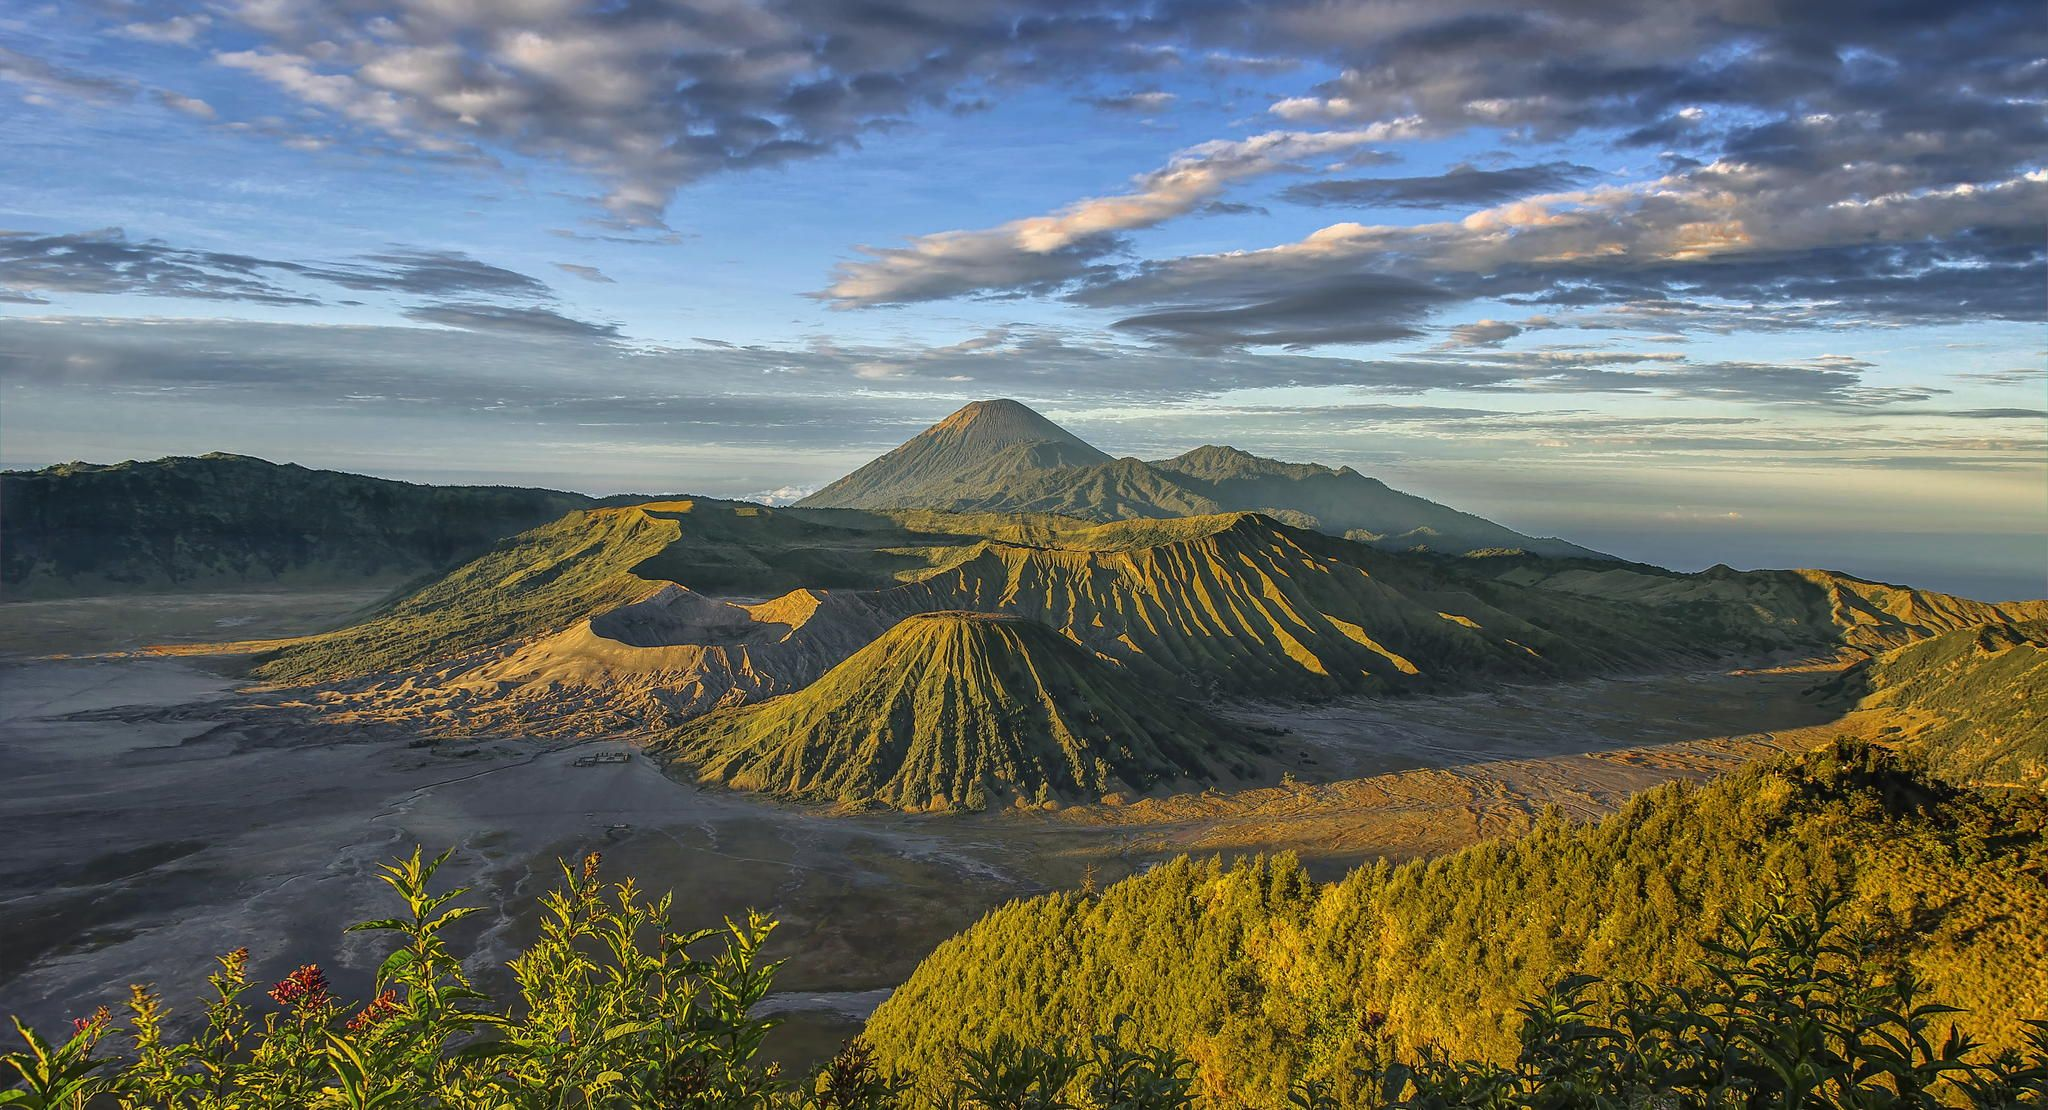 mount bromo has many beautiful panoramic scenery to offer from the famous magnificent sunrise until